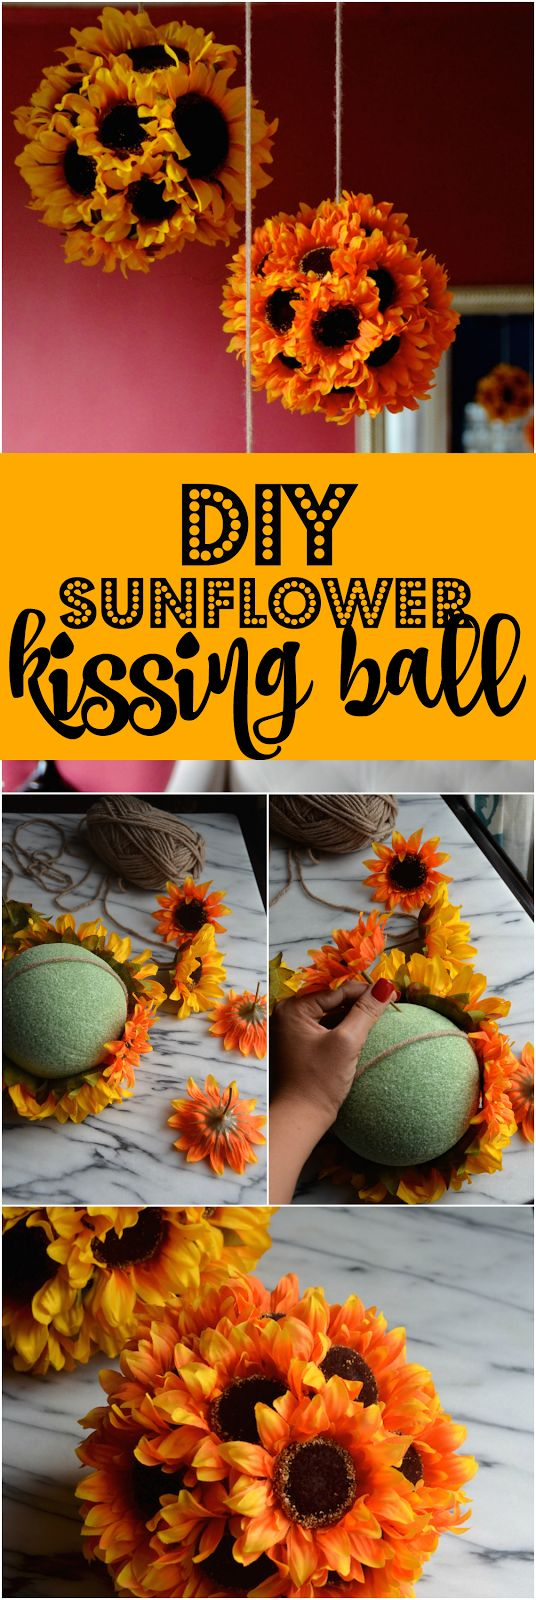 Use silk sunflowers and a styrofoam base to create a simple, bright, and festive Fall-themed decoration perfect for hanging above a dining or buffet table.